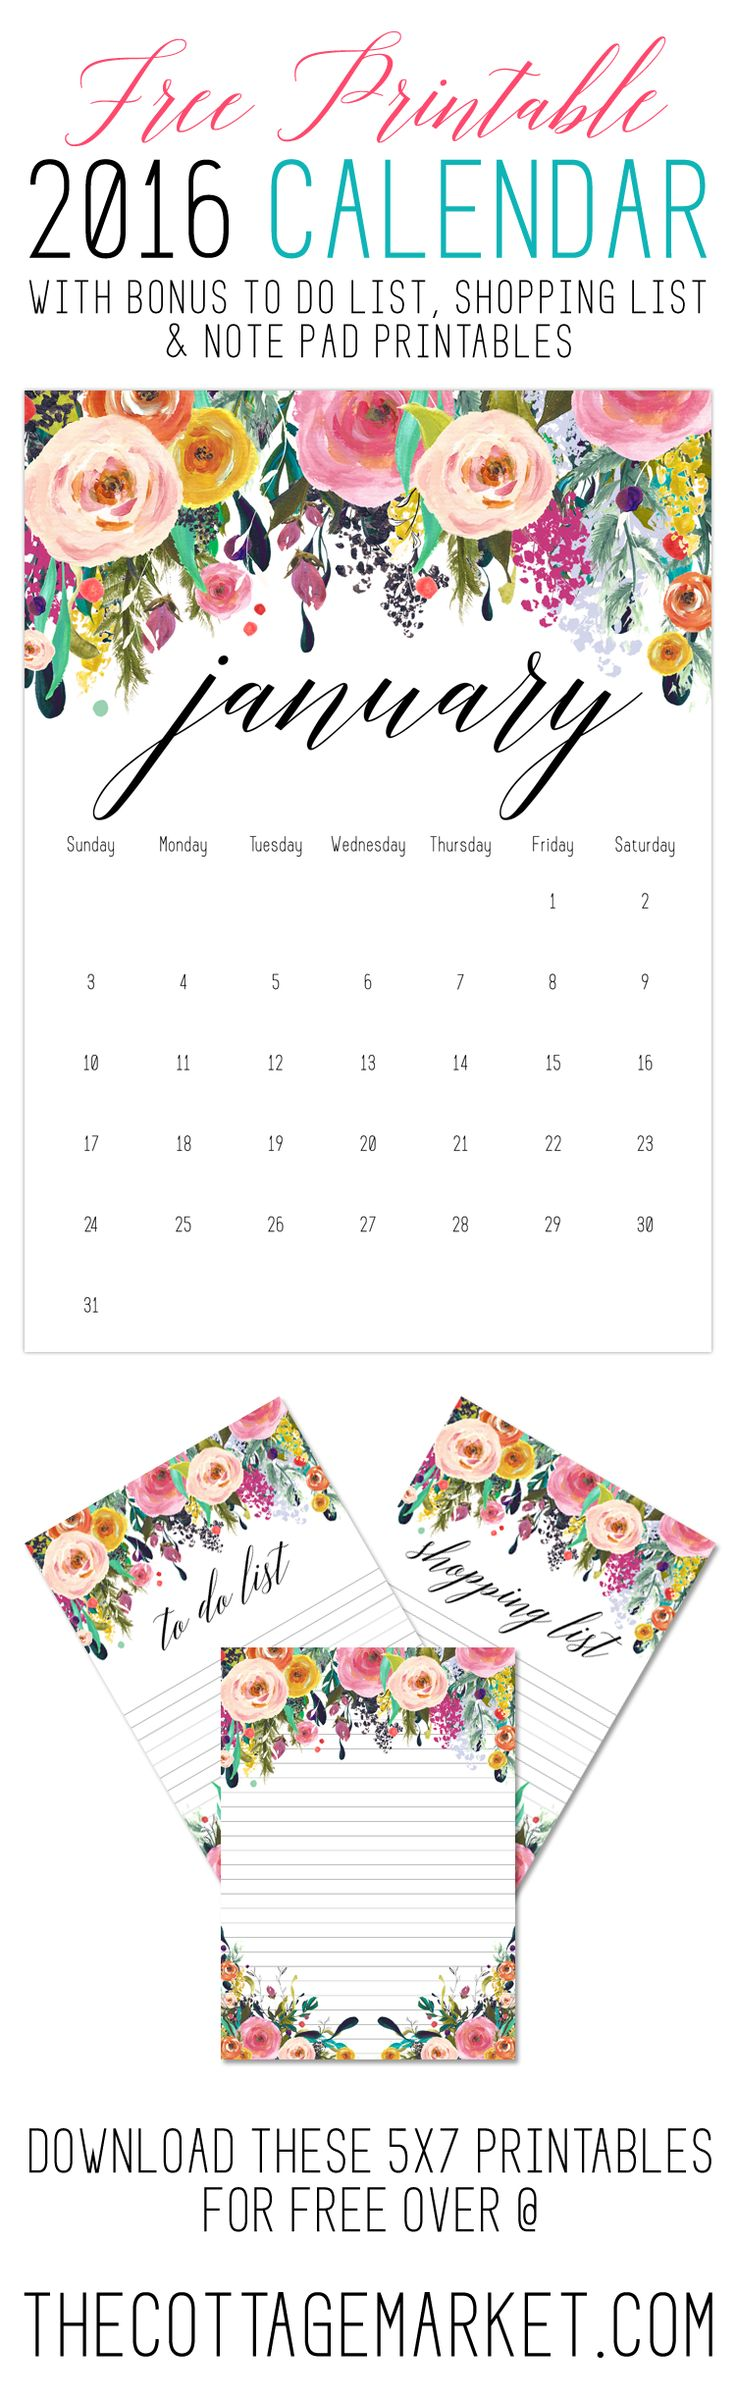 Free Printable 2016 Calendar /// with Bonus Free To Do List, Shopping List & Note Pad Printables - The Cottage Market